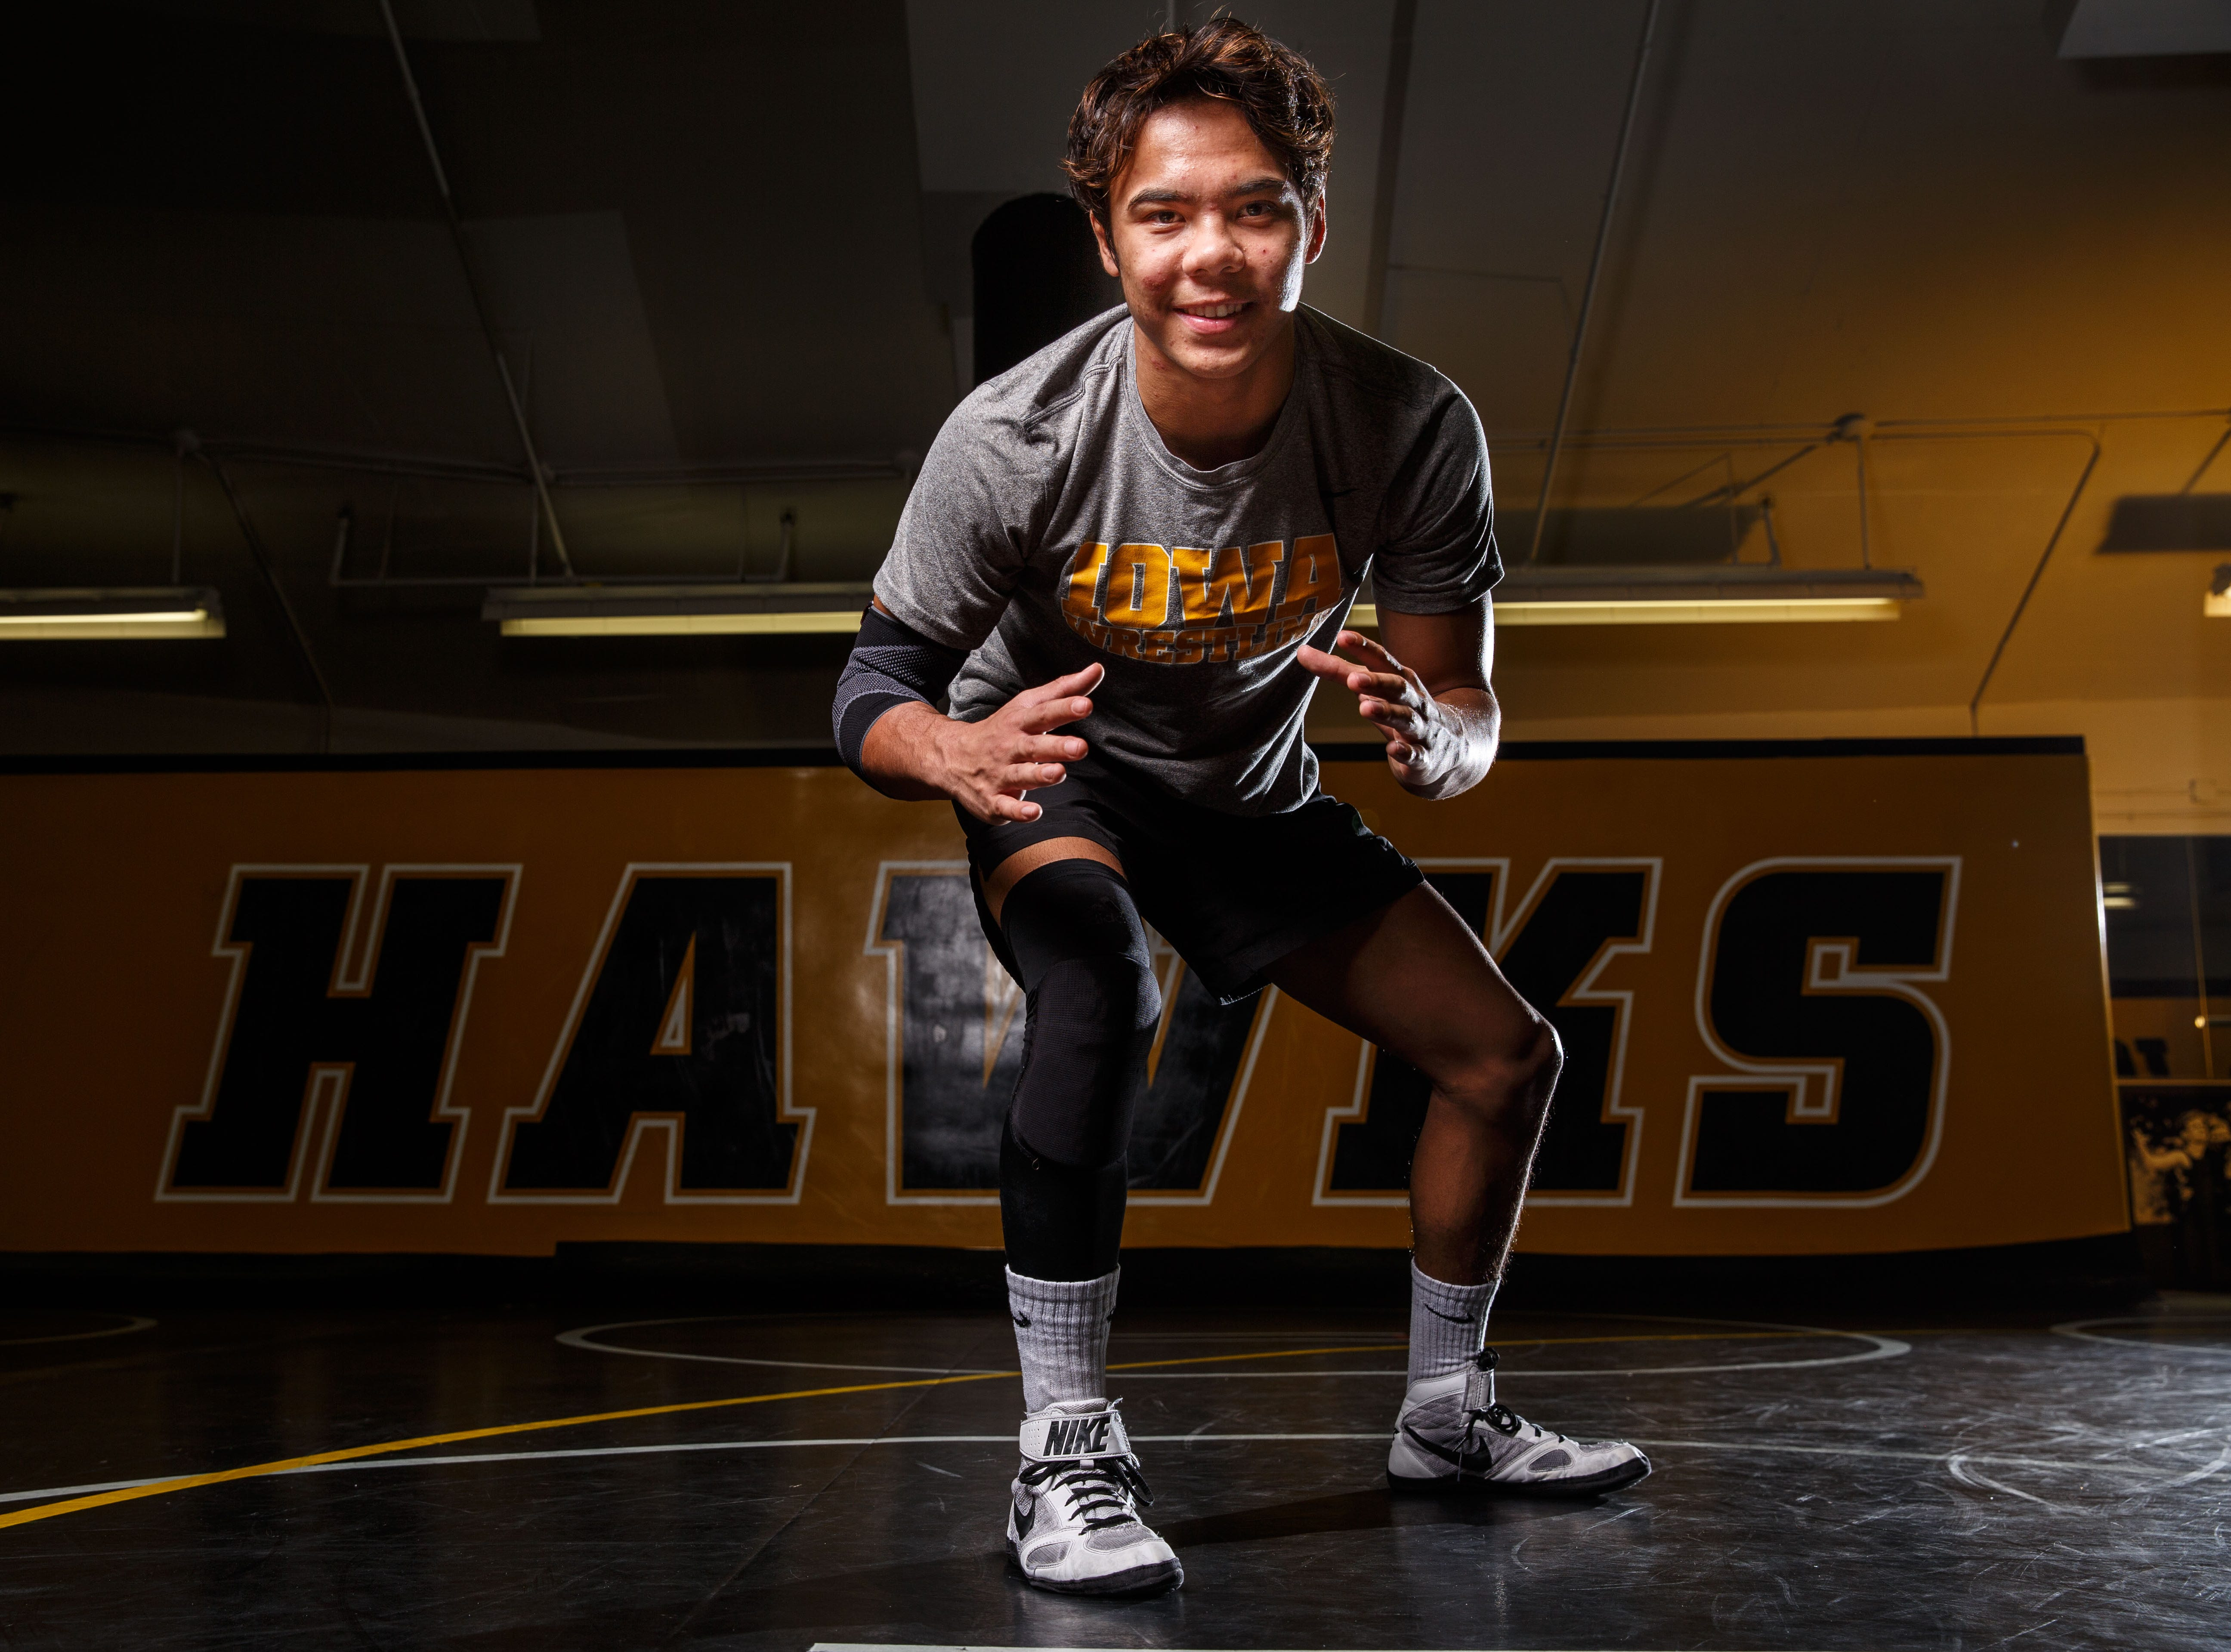 Aaron Cashman stands for a portrait during Iowa wrestling media day Monday, Nov. 5, 2018.